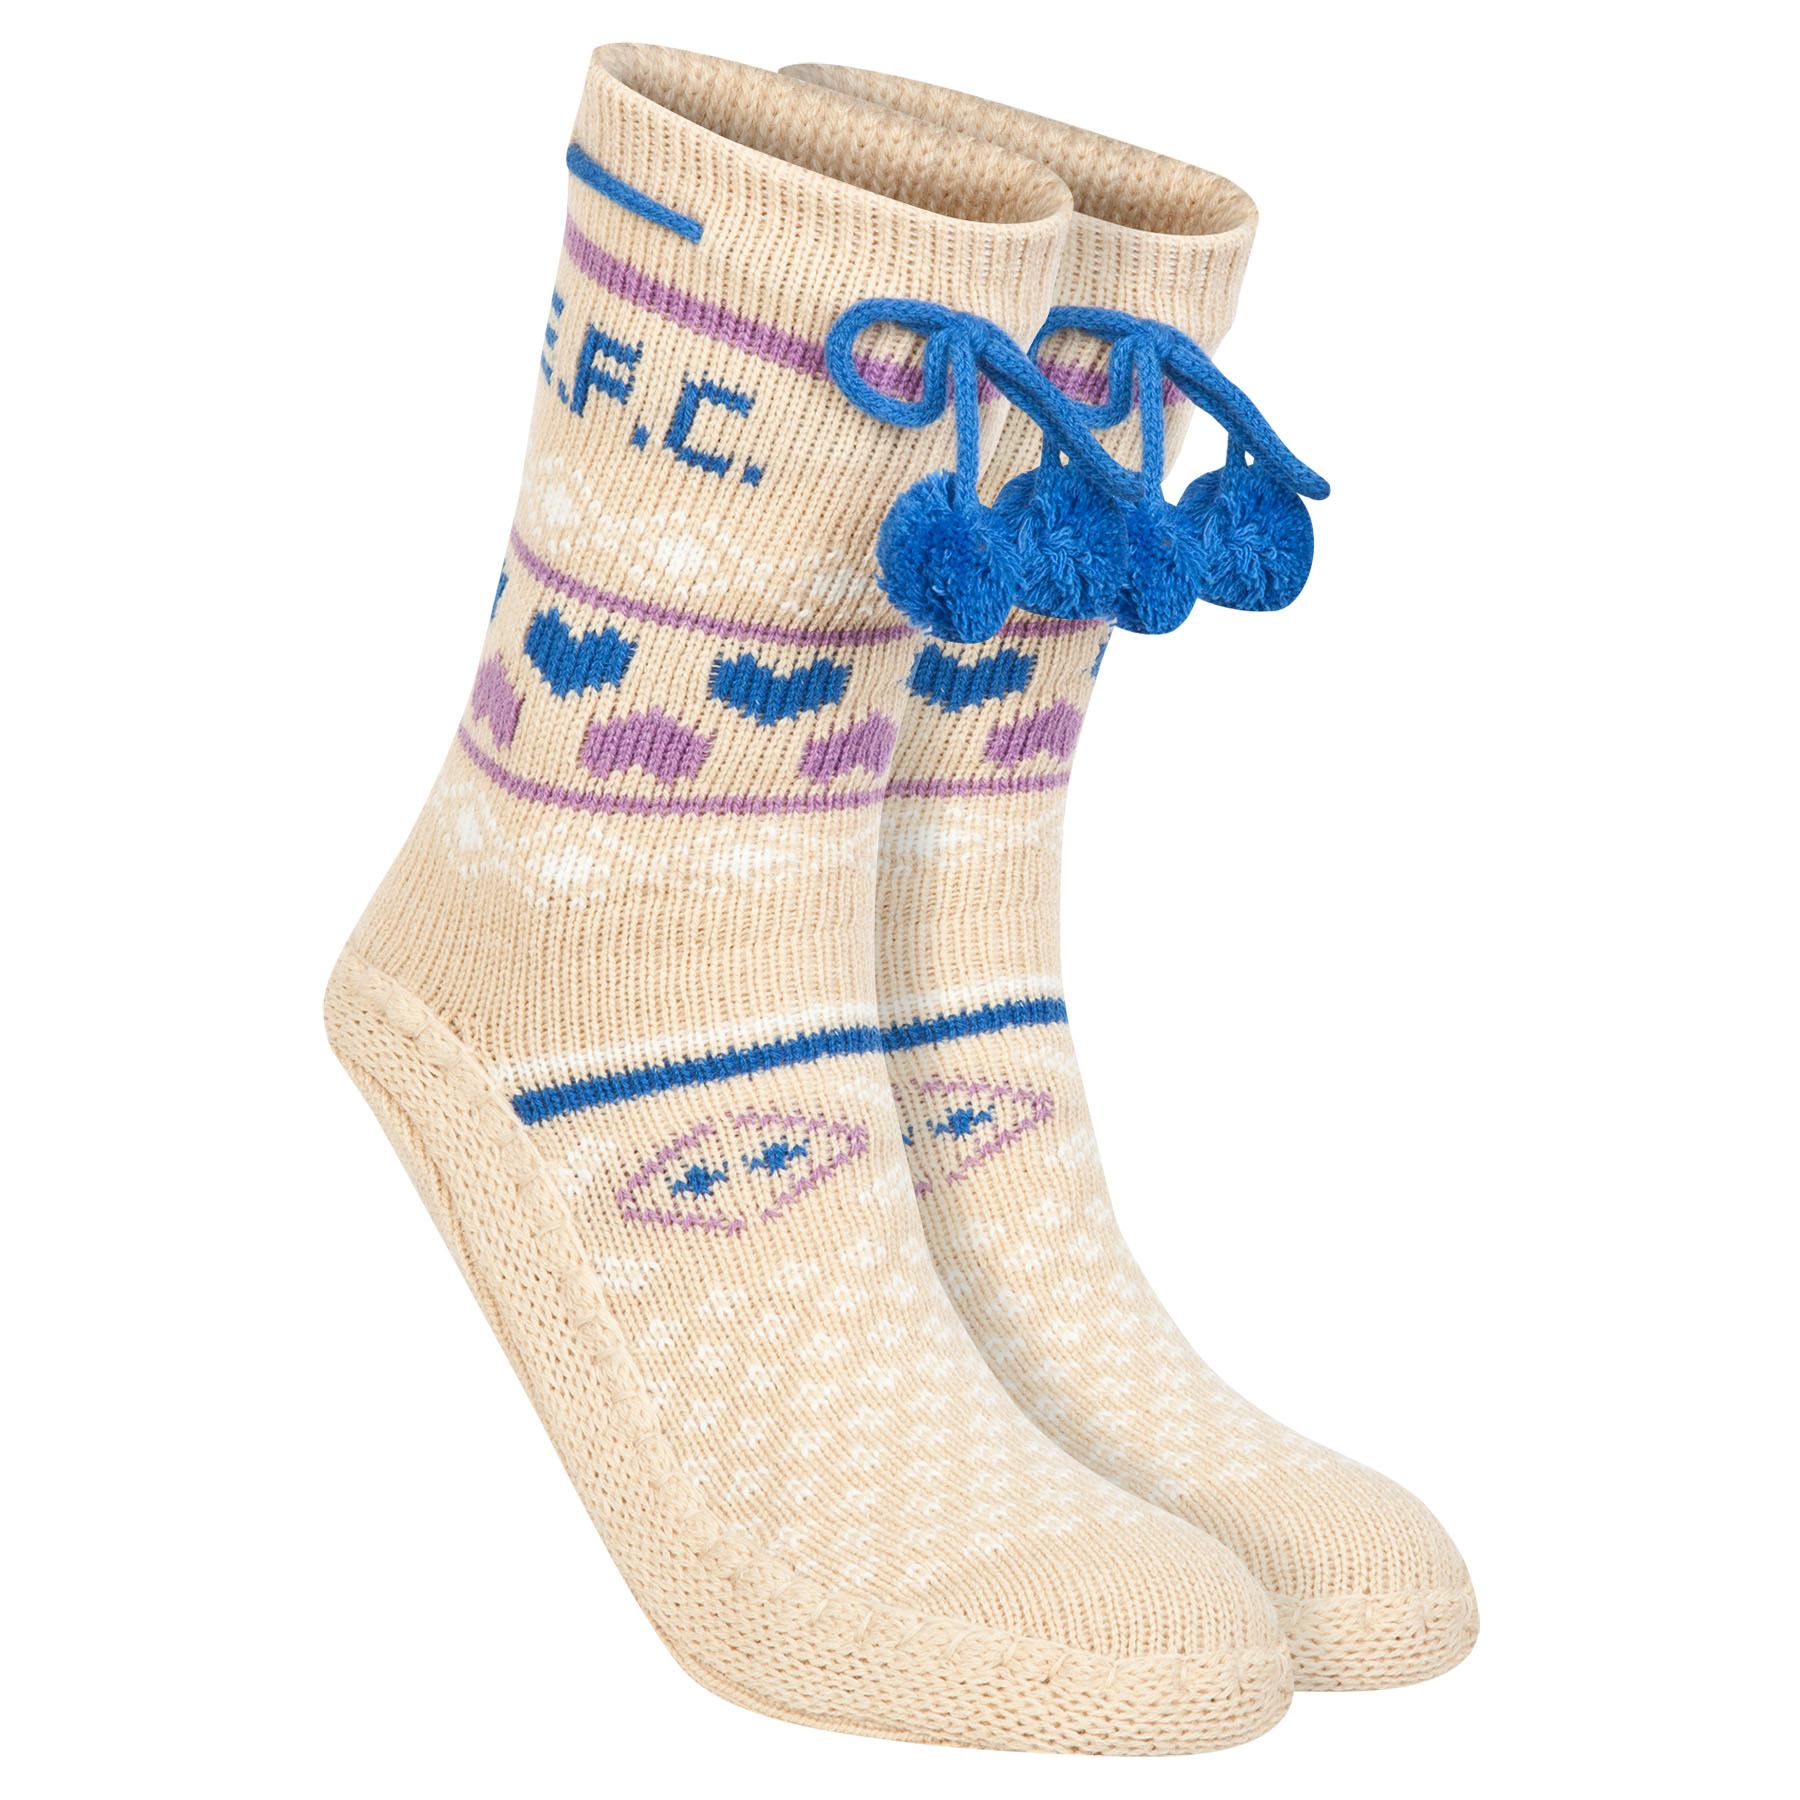 Everton Slipper Socks - Cream/Blue/Purple - Womens